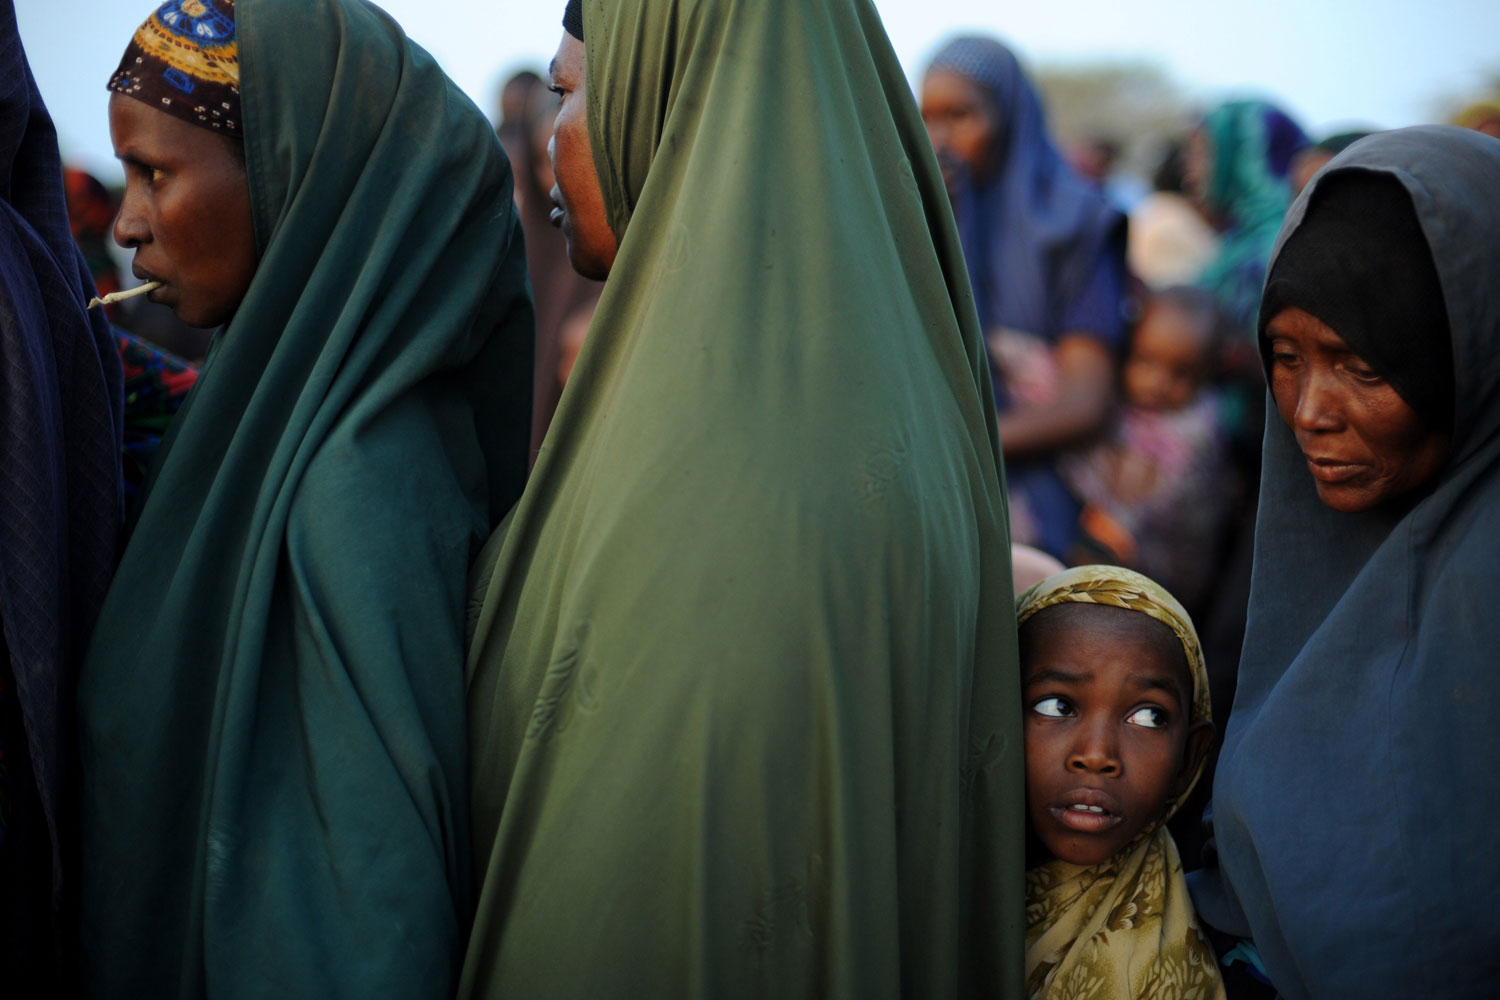 July 5, 2011. A young Somali girl who fled violence and drought in Somalia stands in line among adults outside a food distribution point in Dadaab refugee camp in northeastern Kenya. Dadaab, a complex of three settlements, is the world's largest refugee camp. Built to house 90,000 people and home to more than four times that number, it was already well over its maximum capacity before an influx of 30,000 refugees in the month of June.